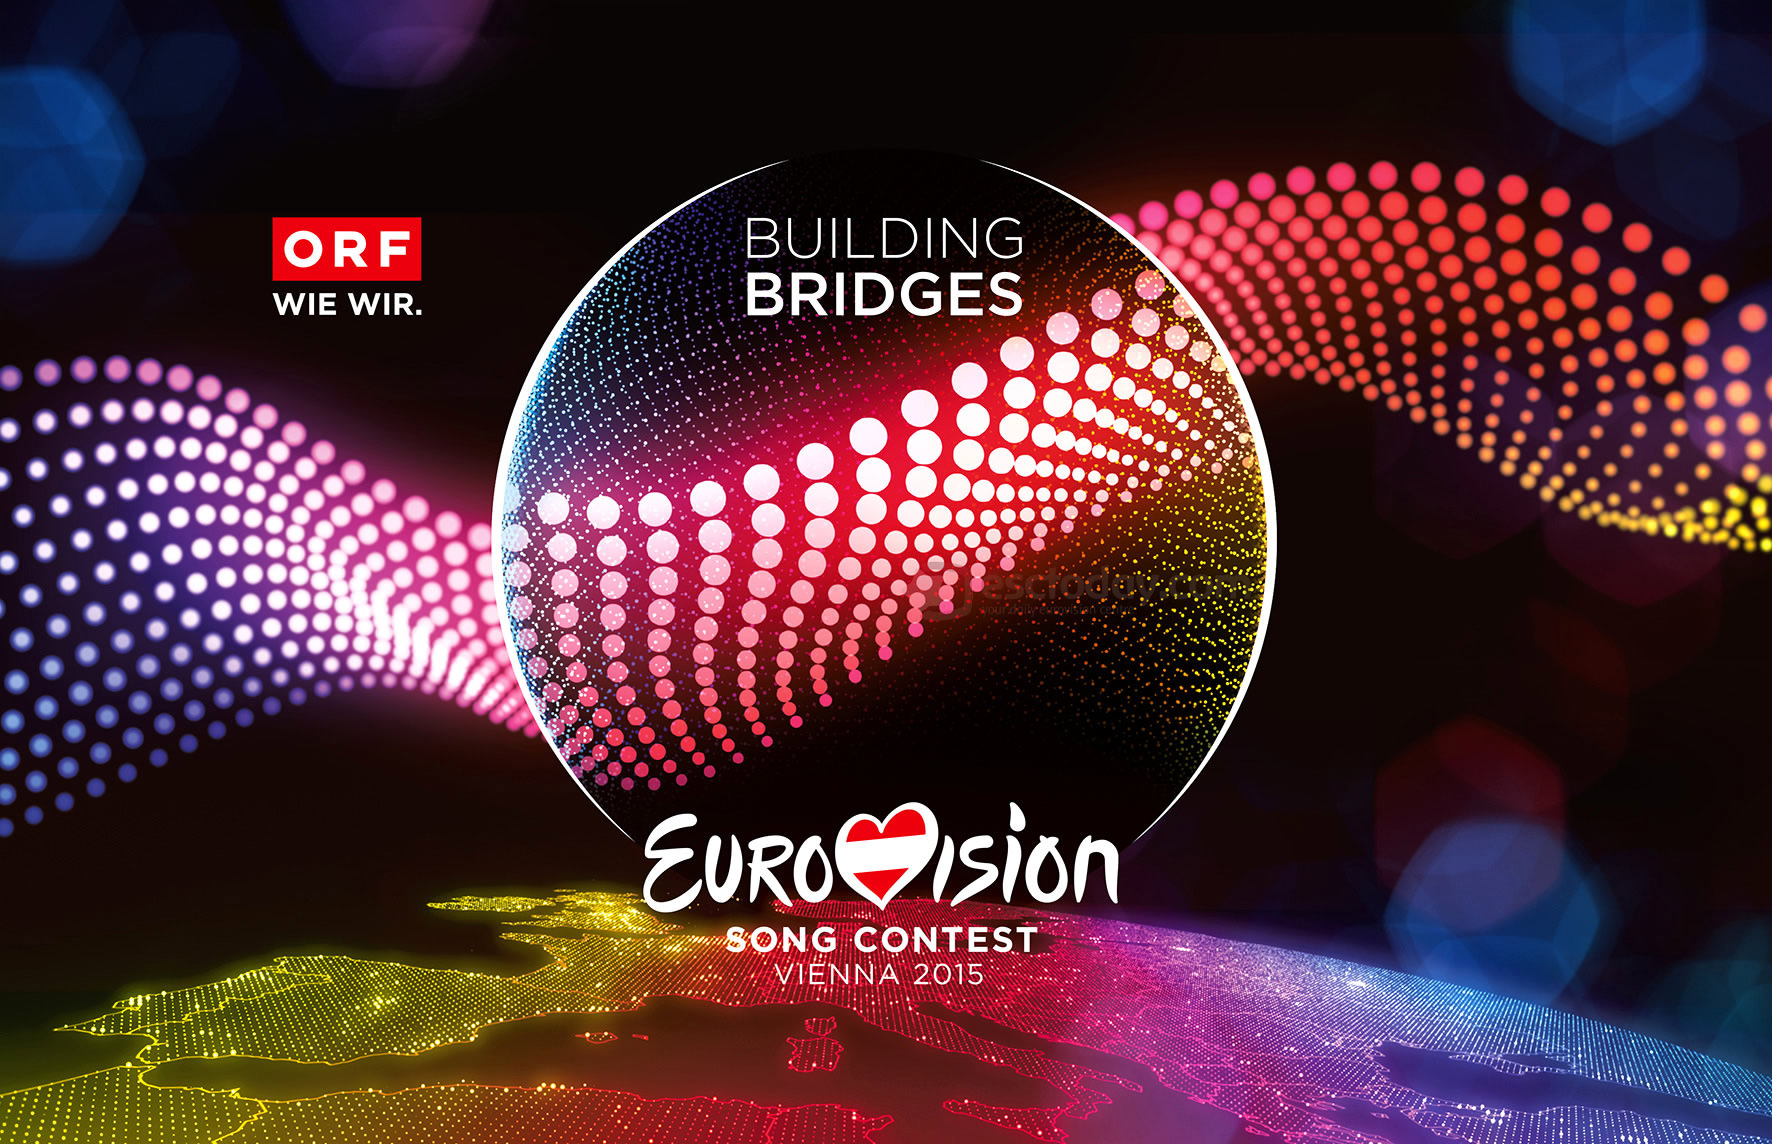 Eurovision 2015: Digital album ready